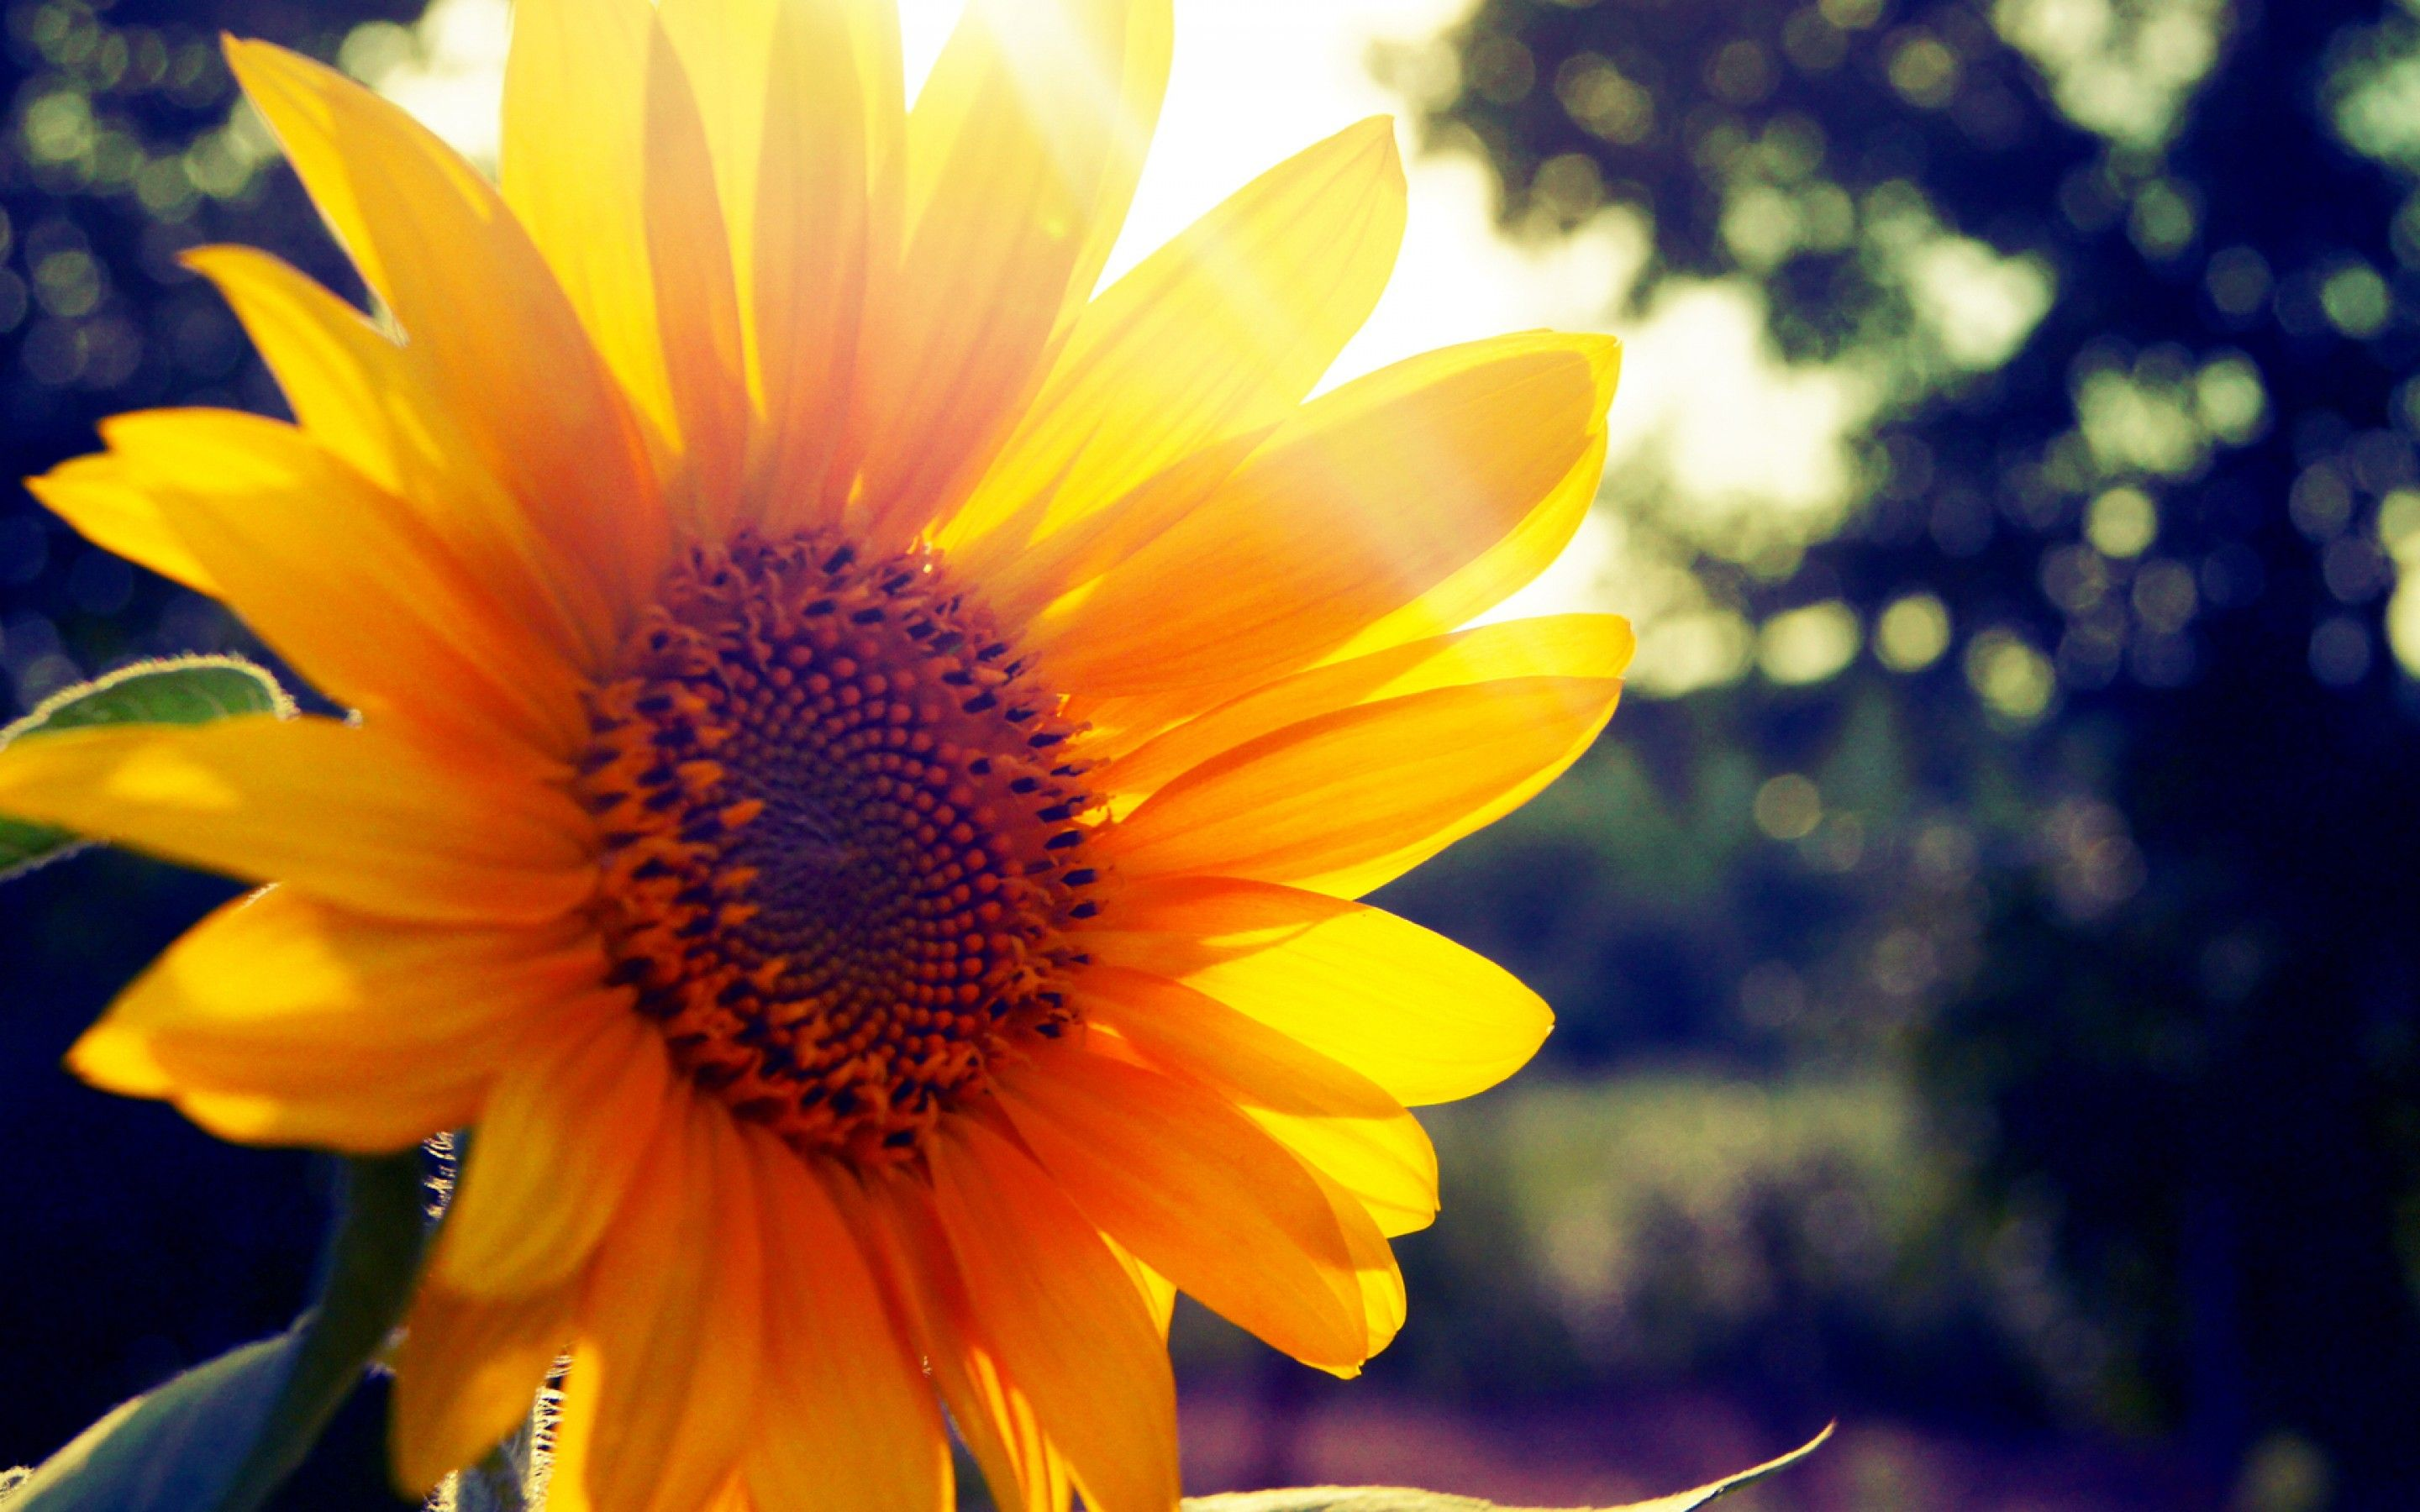 Sunflower Desktop Wallpapers and Artwork | page 2